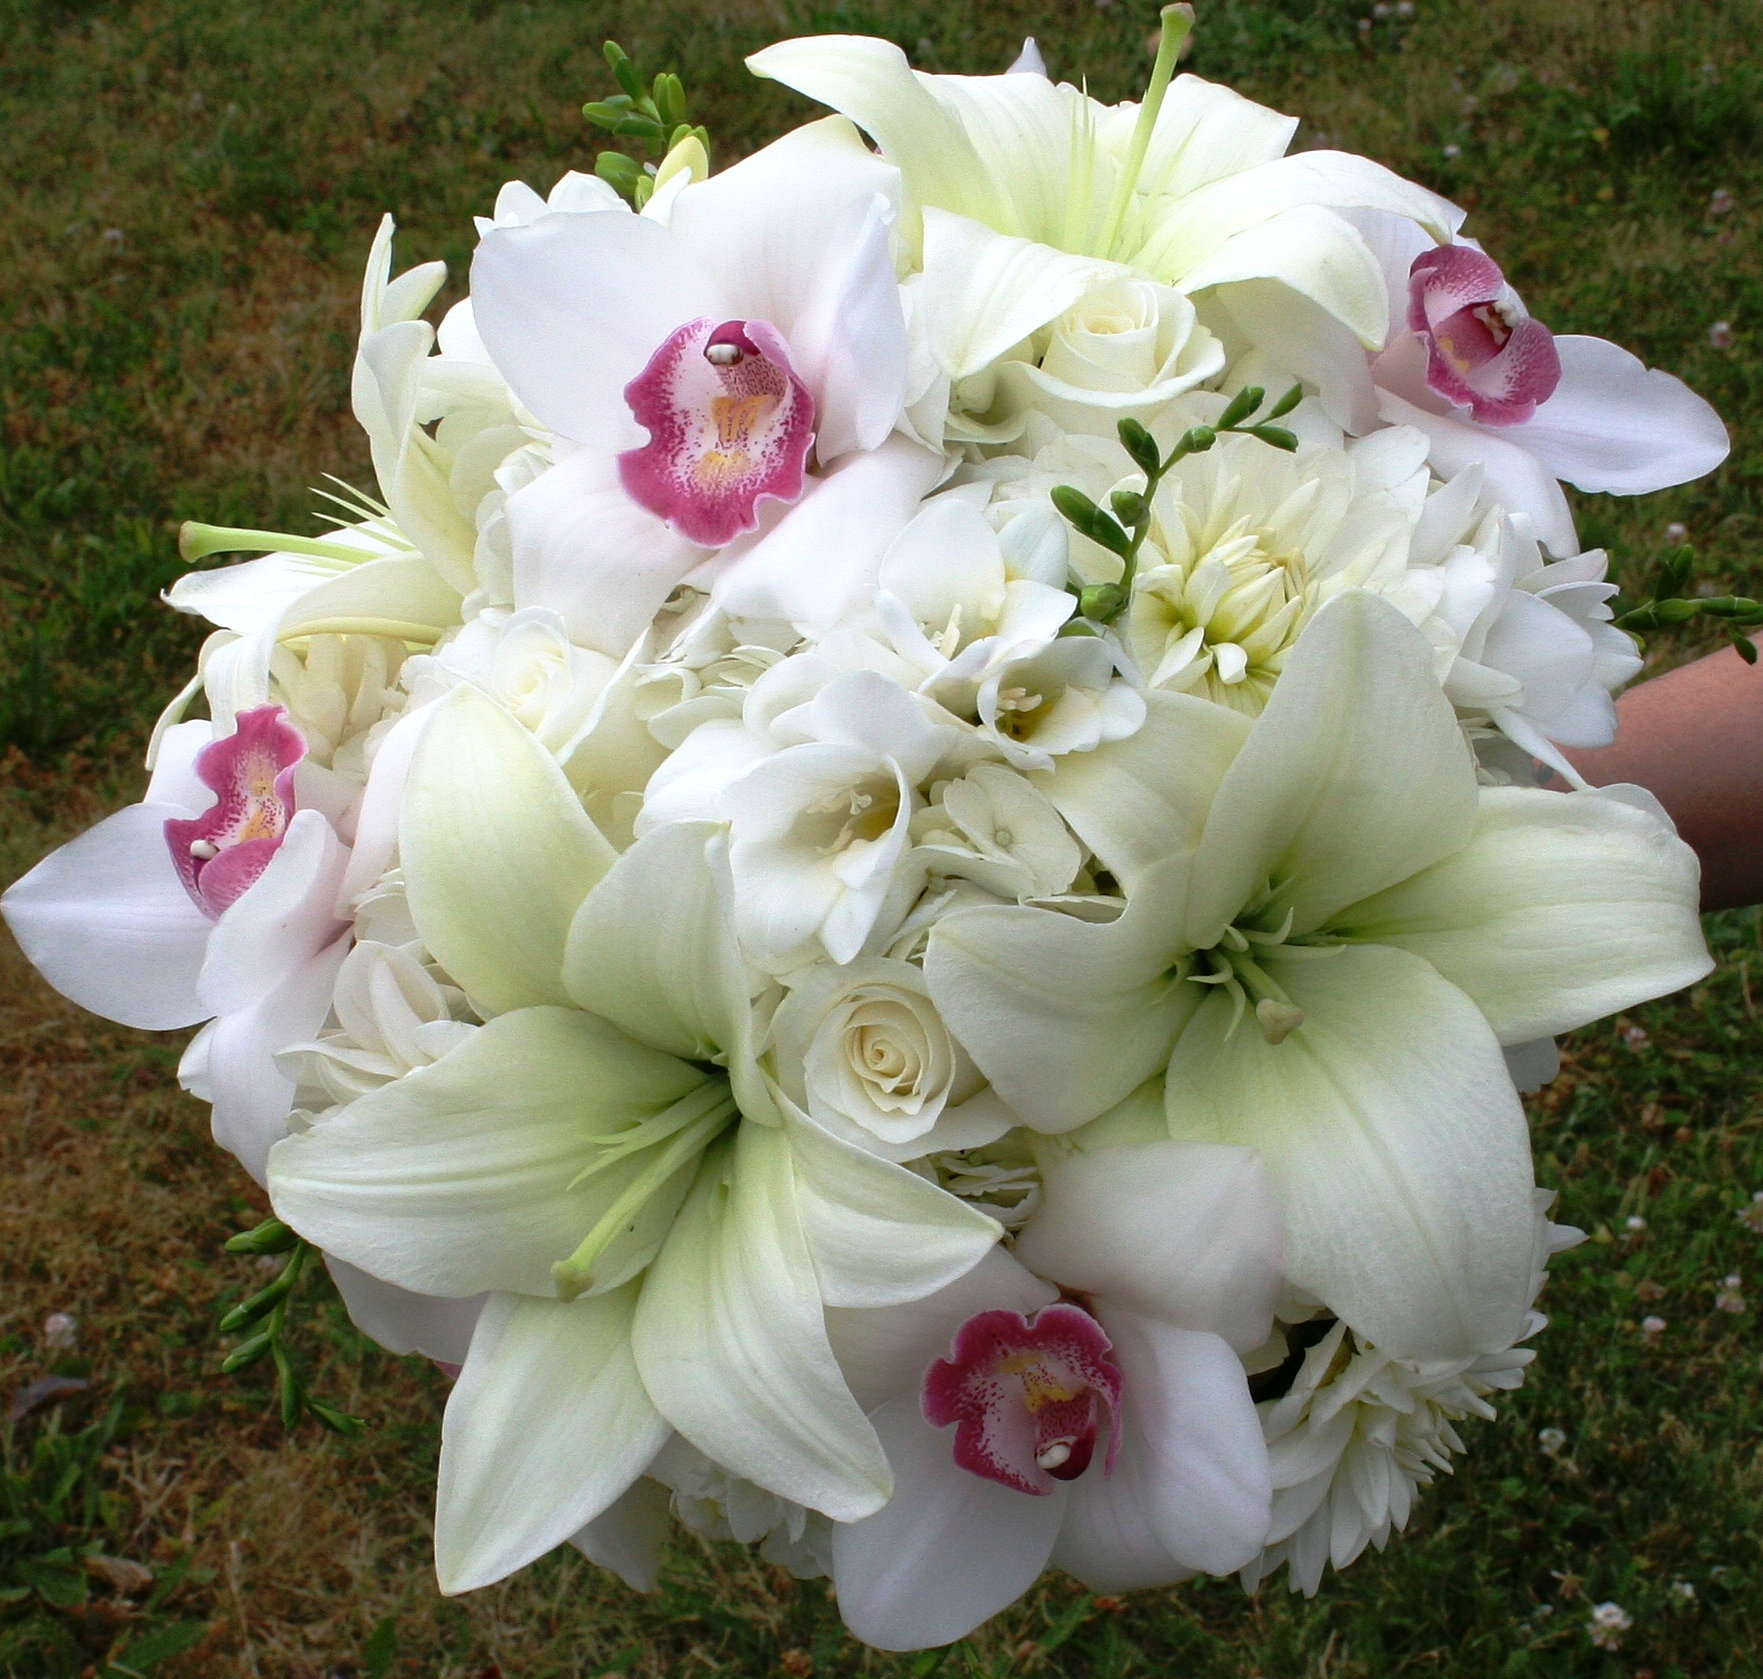 Bridal Flowers In November : Brides by design resale boutique white wedding flowers